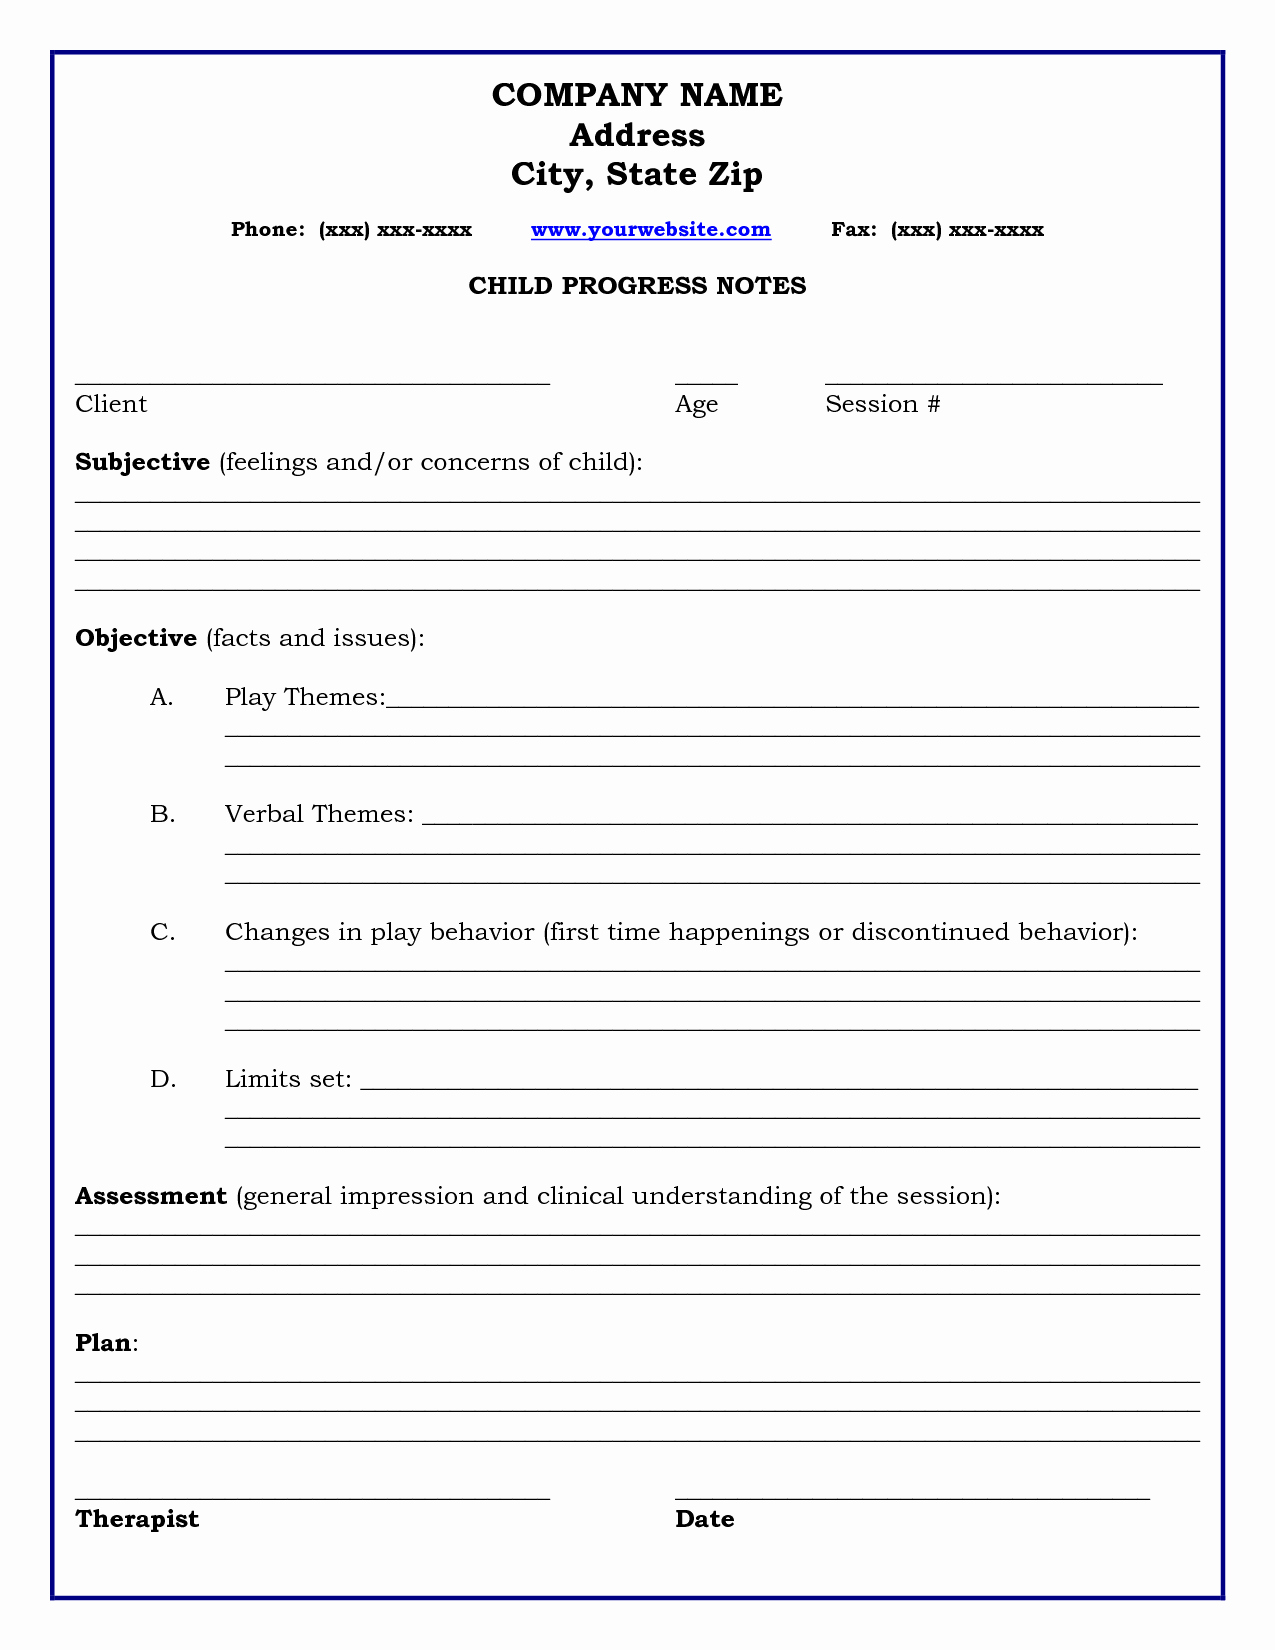 Free Psychotherapy Progress Note Template Elegant therapy Progress Note Template